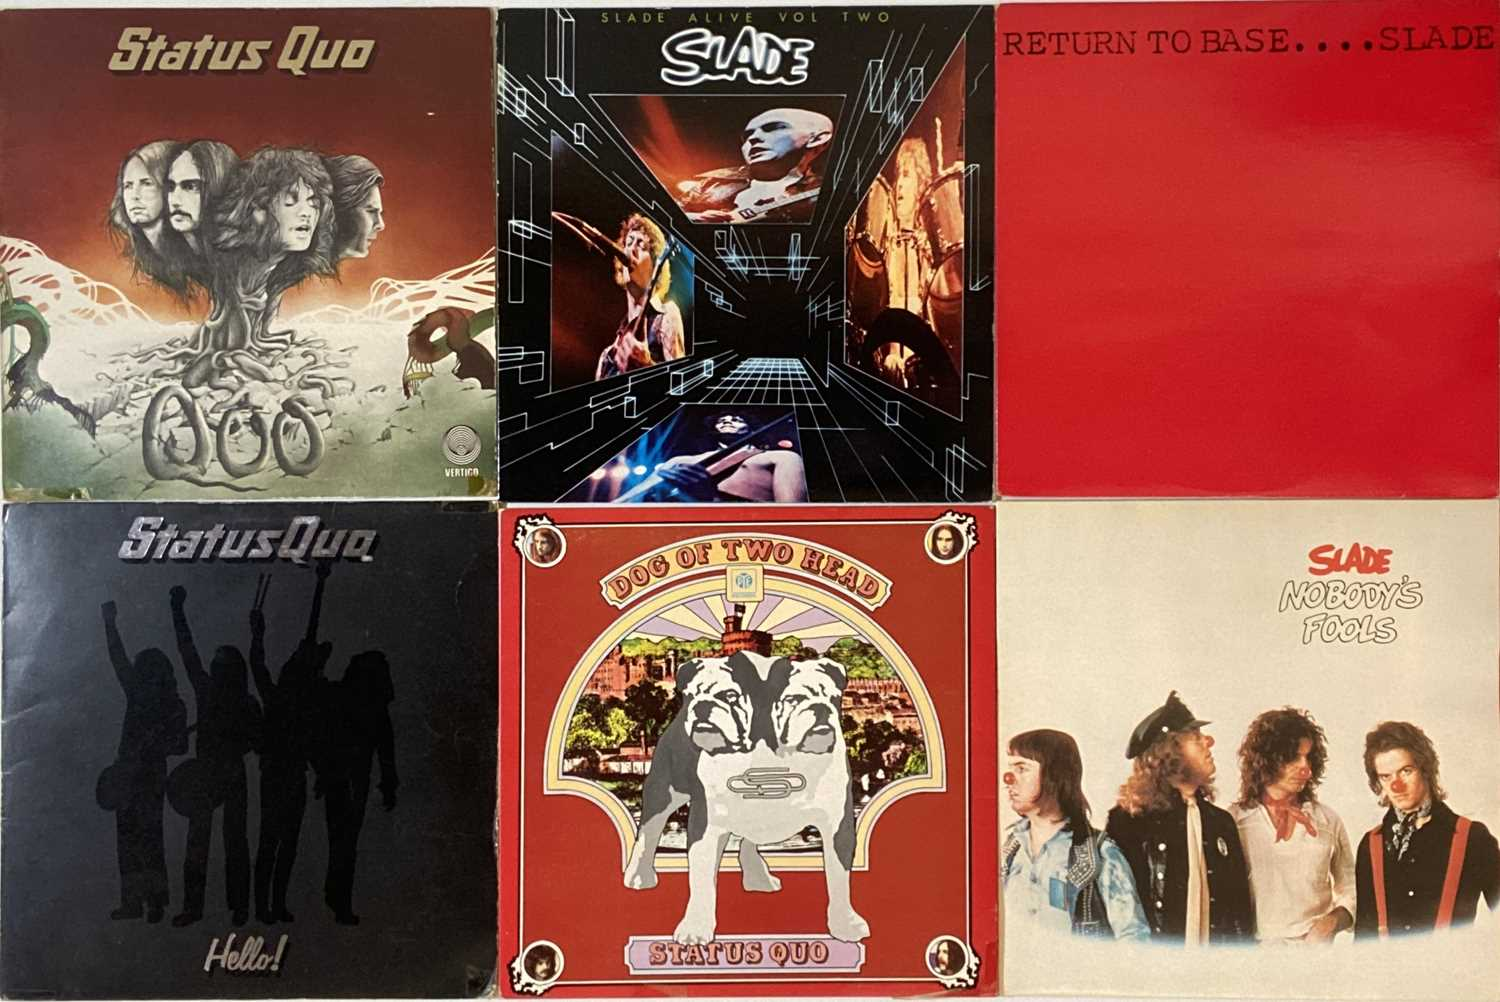 SLADE/ STATUS QUO - LP COLLECTION - Image 3 of 4